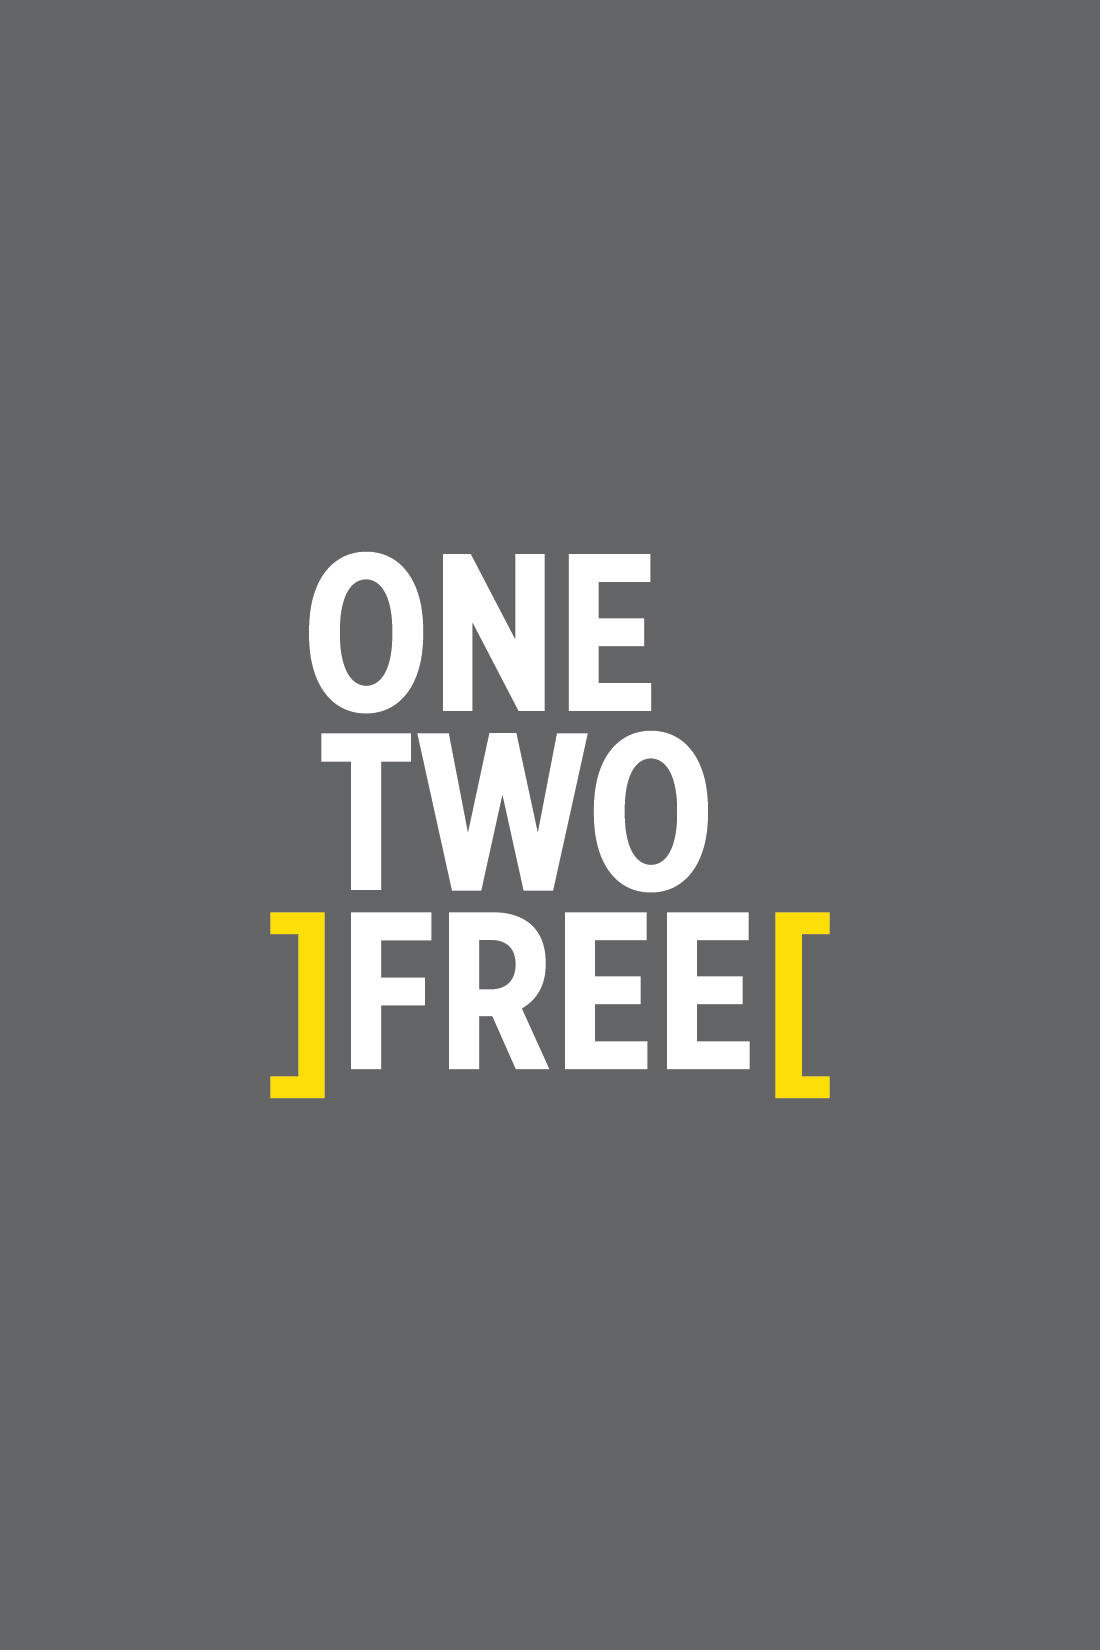 ONE TWO FREE